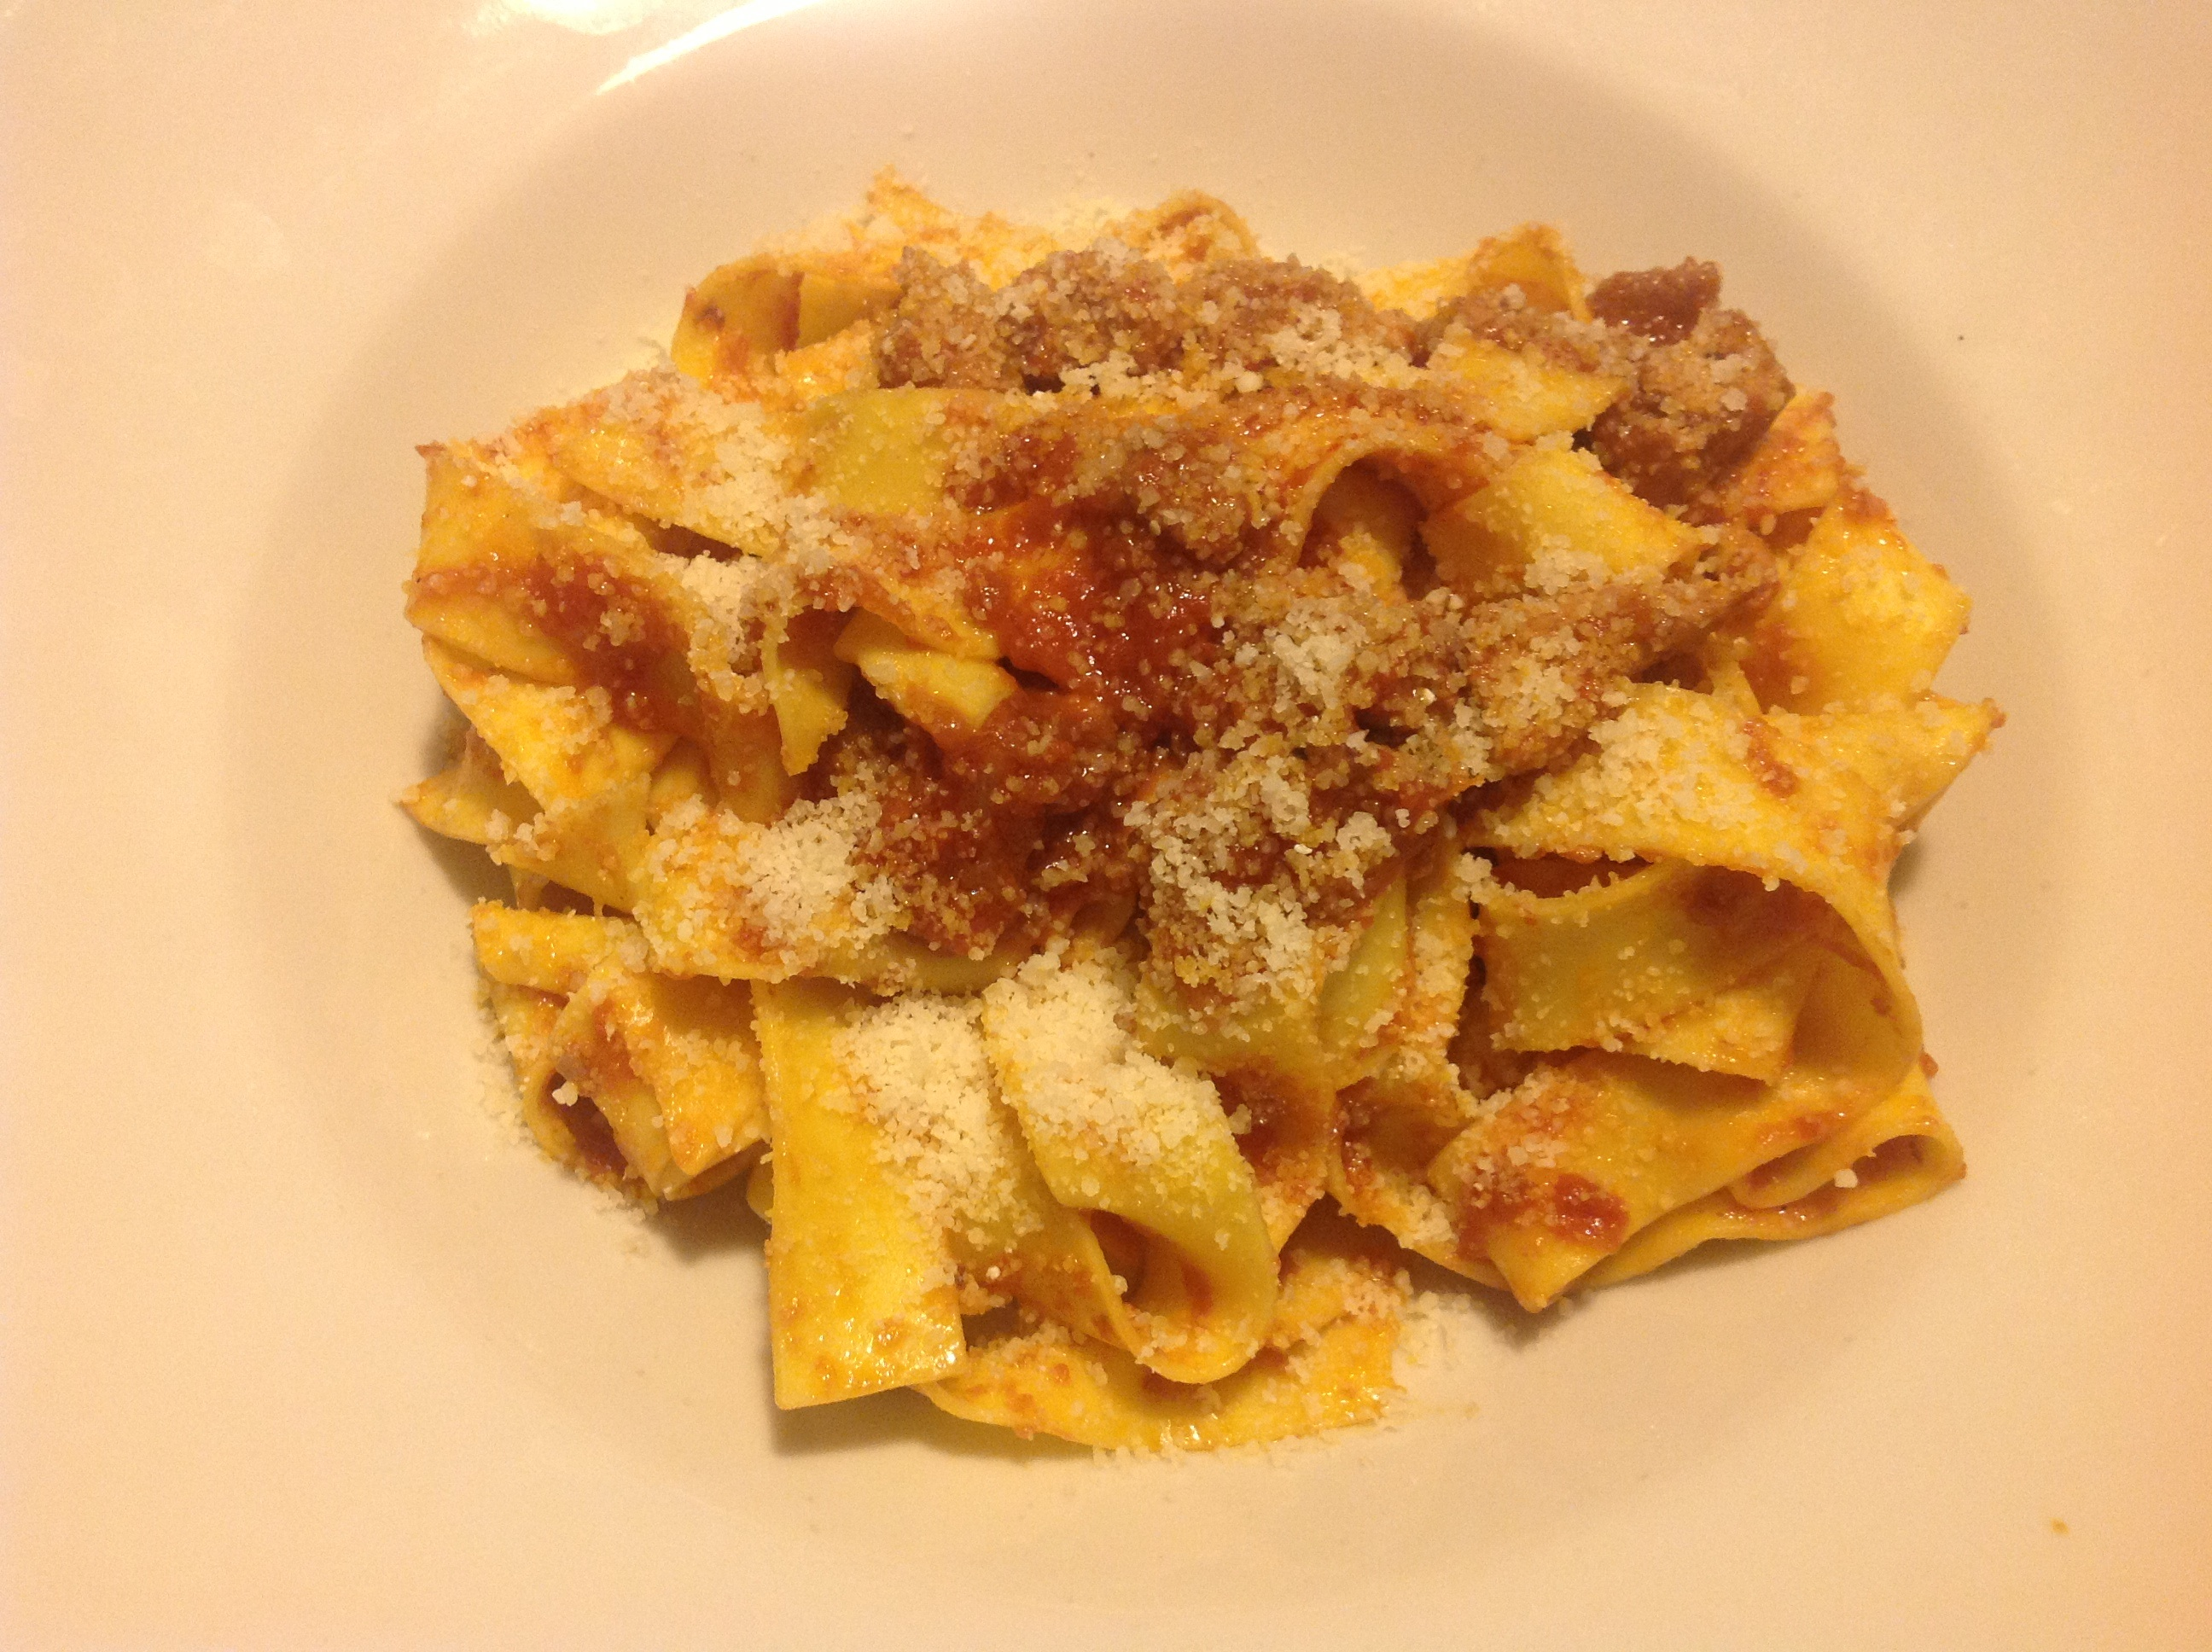 Pappardelle with ragù alla bolognese (cut with a knife)